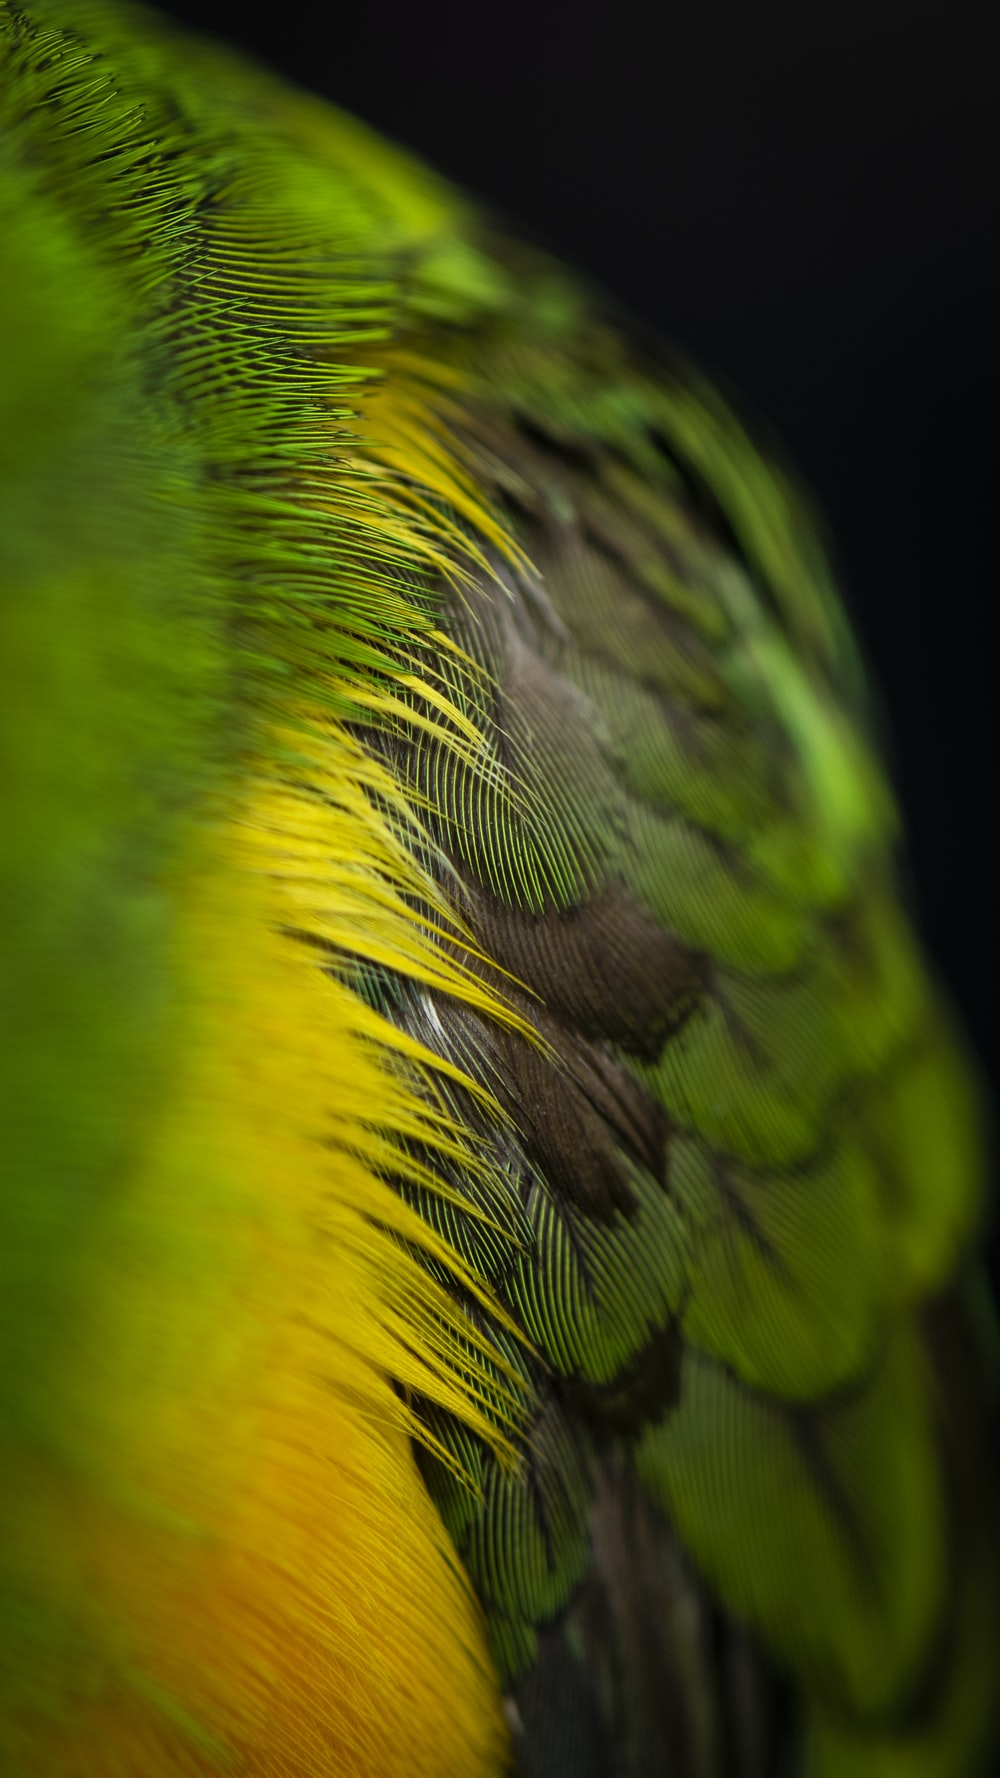 green and black feathers